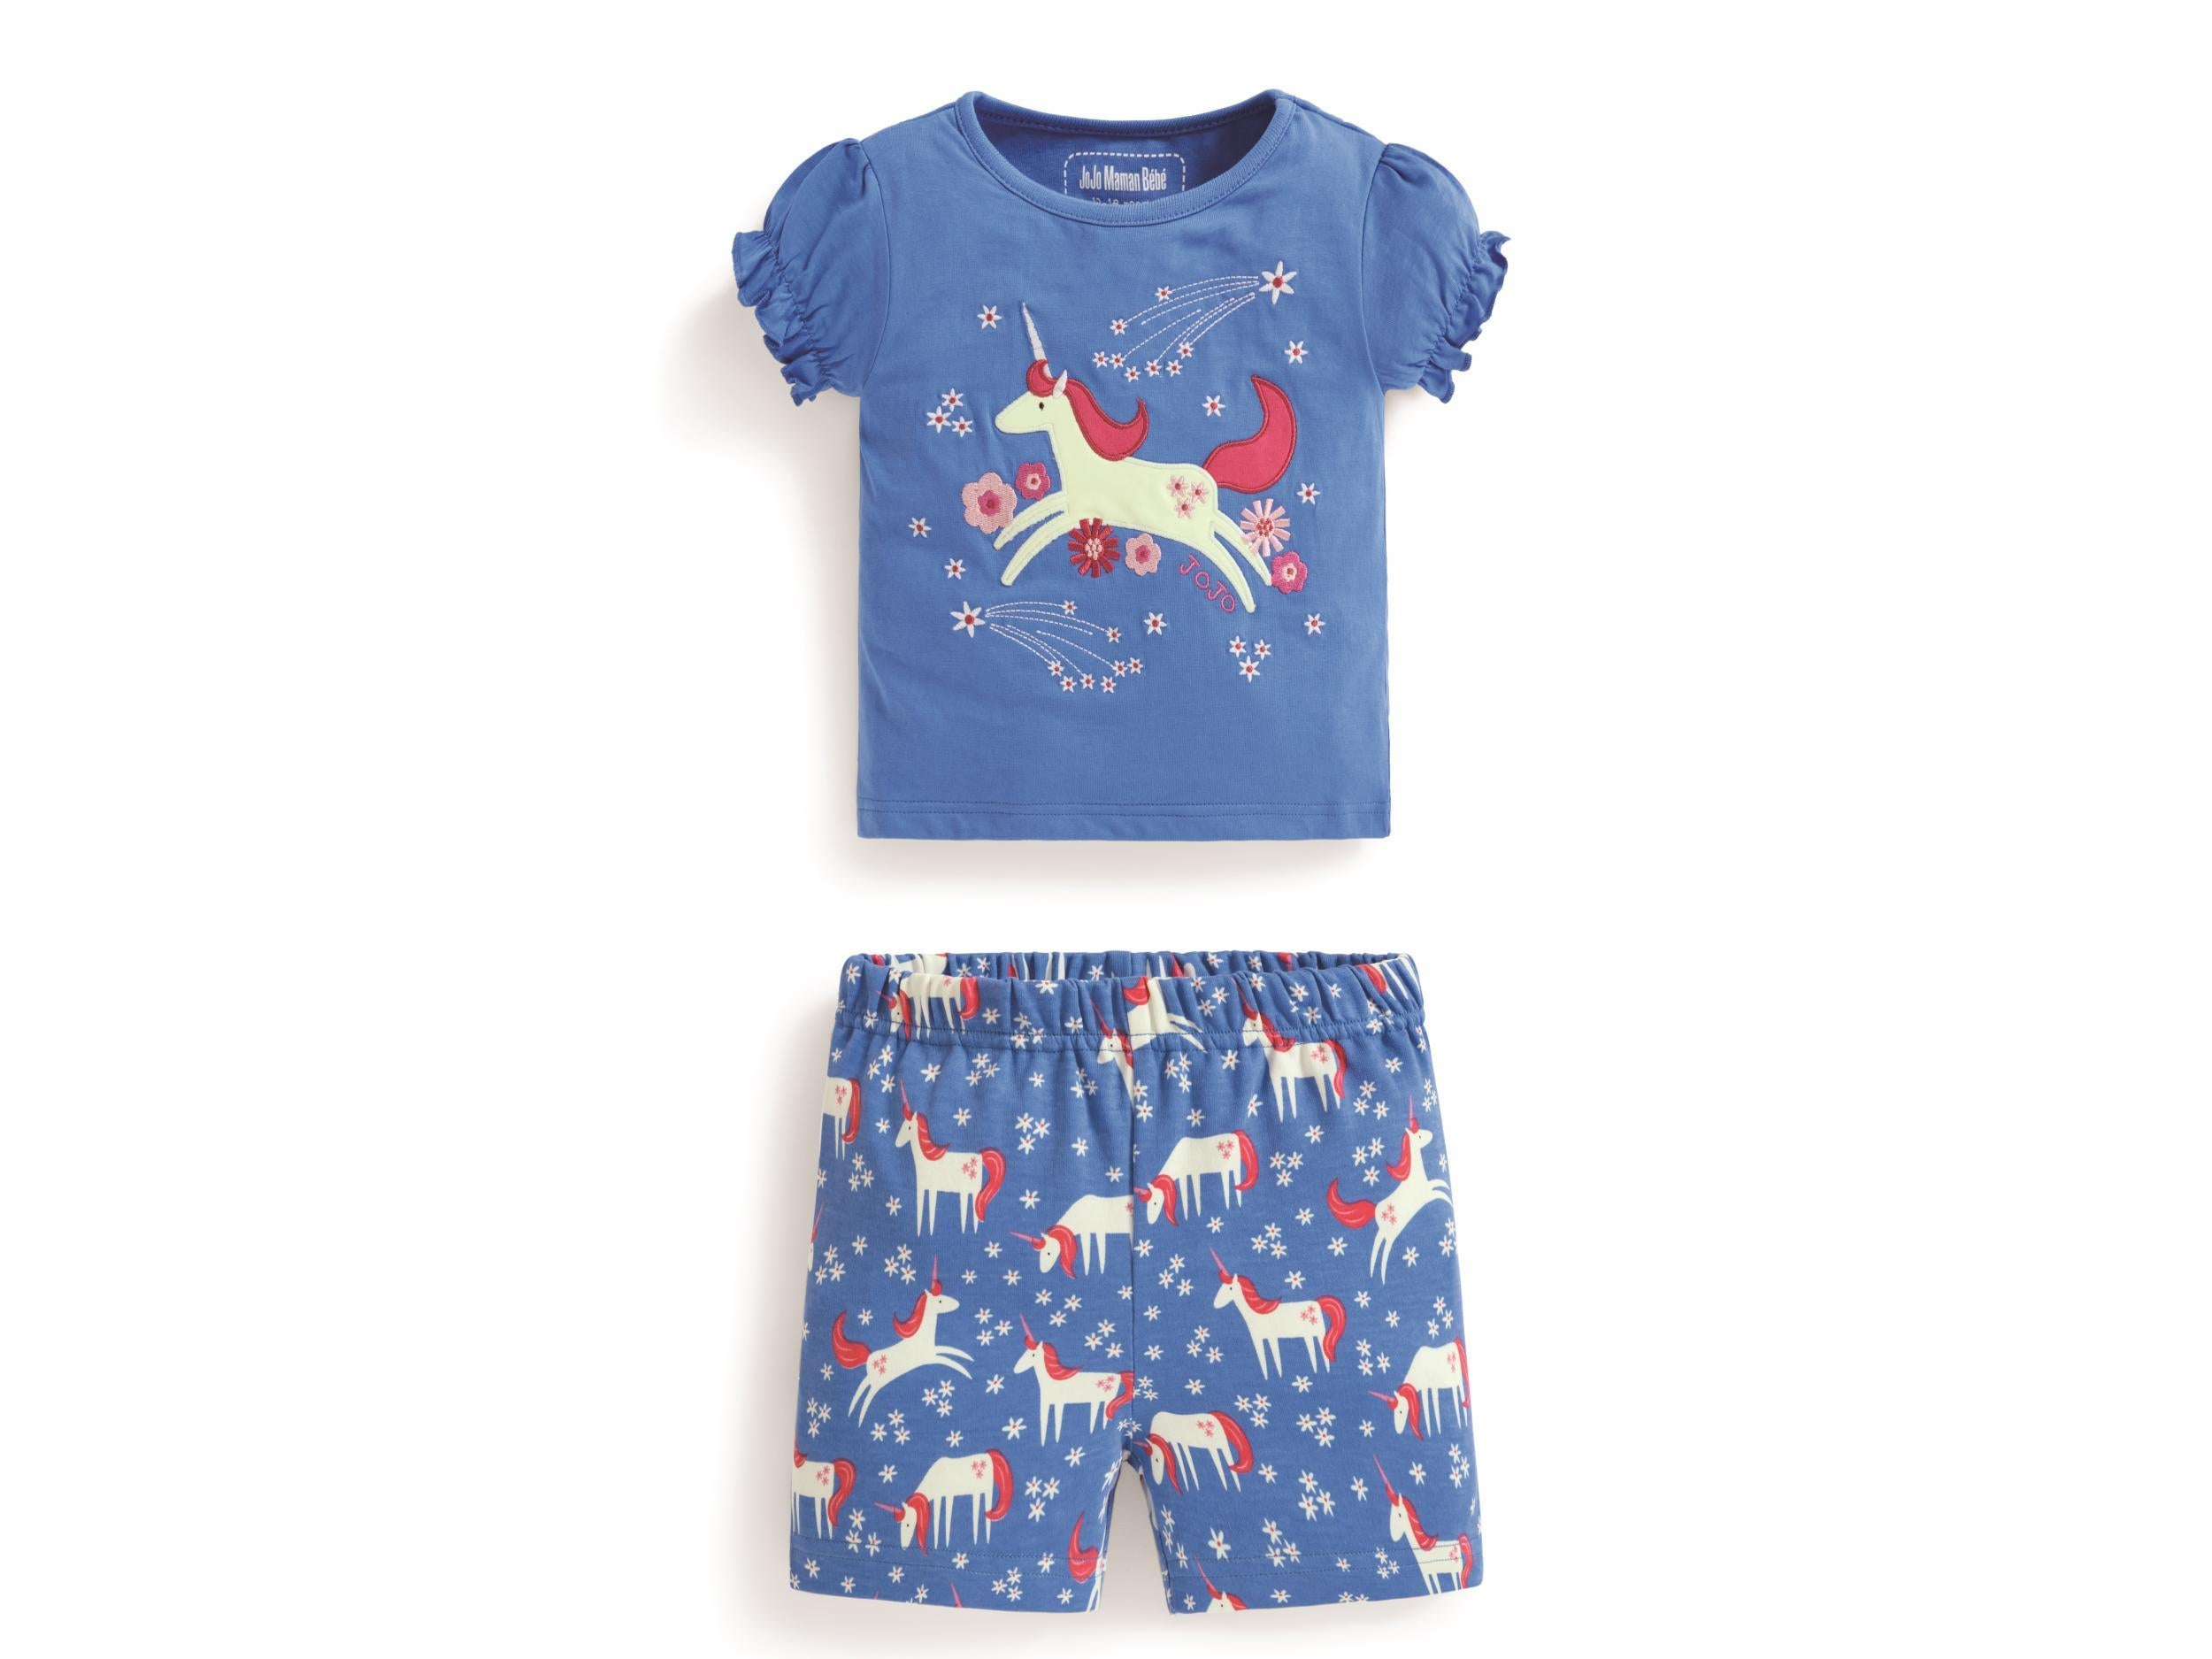 15 best kids' pyjama brands | The Independent